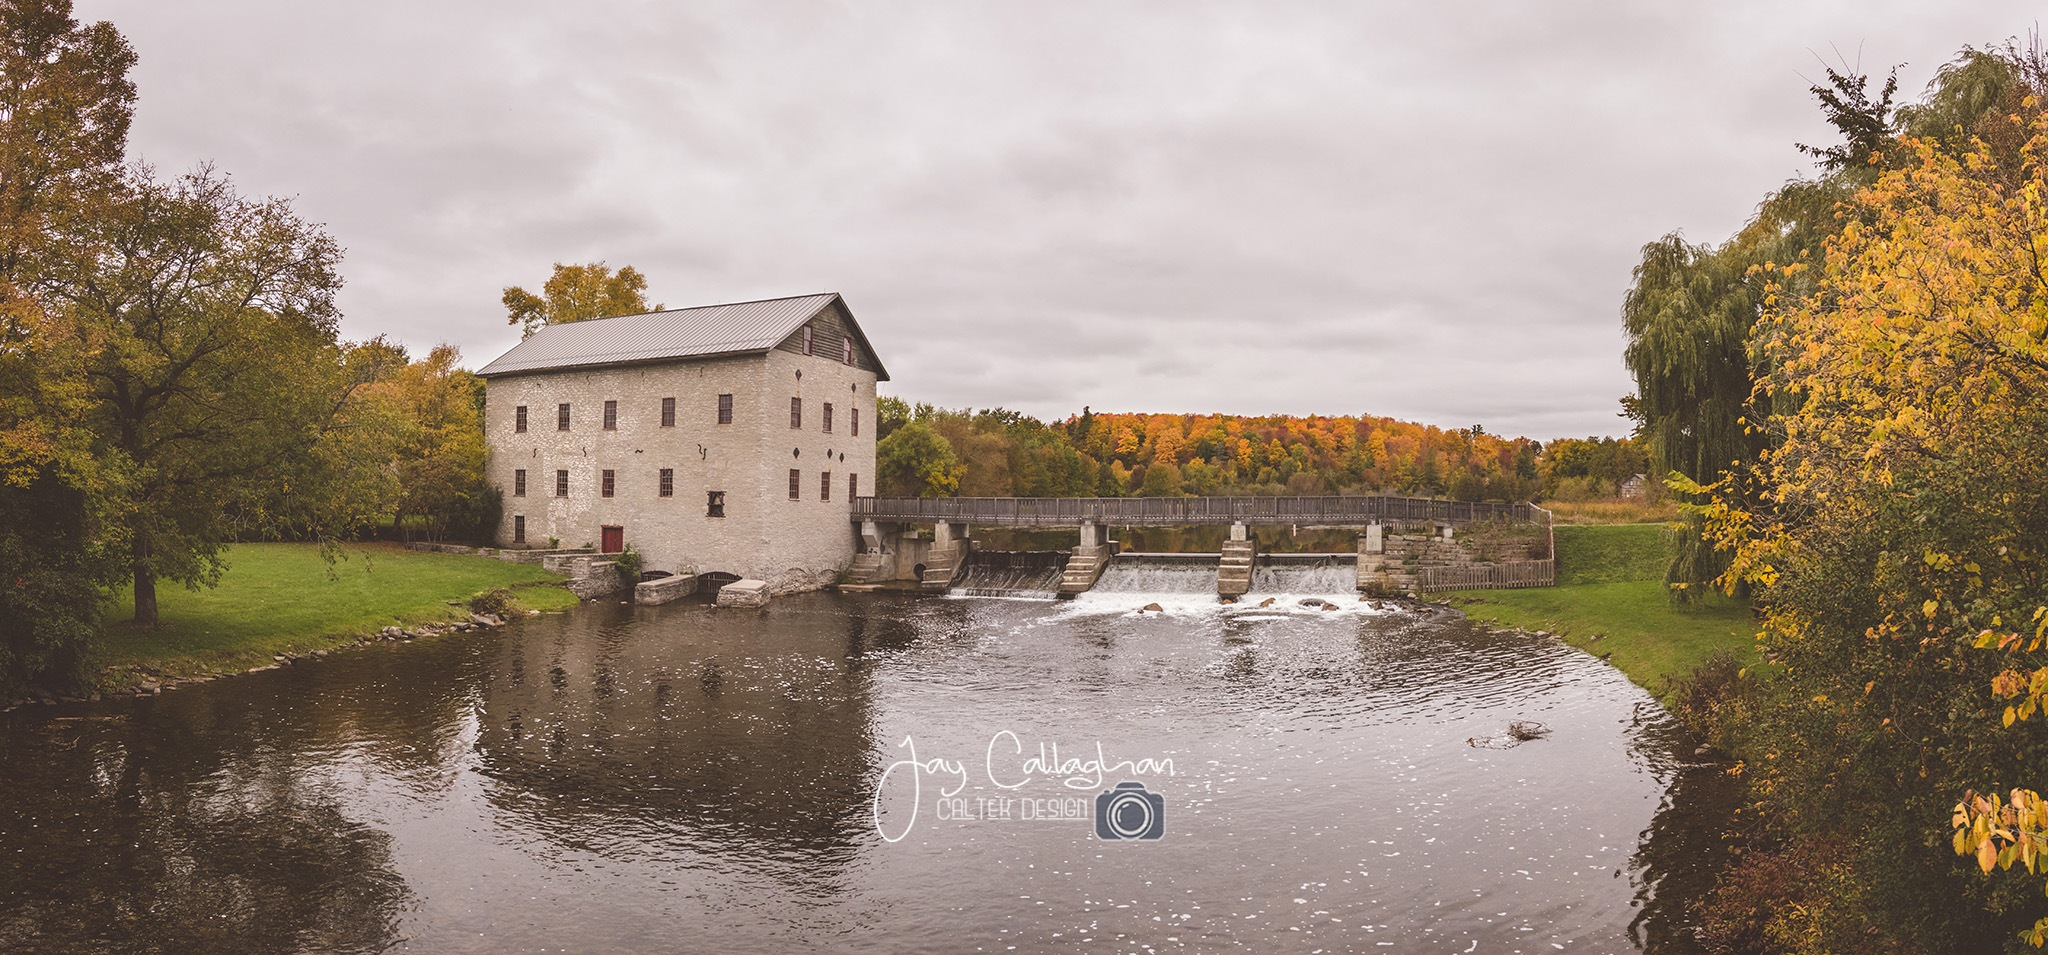 Autumn at the Mill by Jay Callaghan